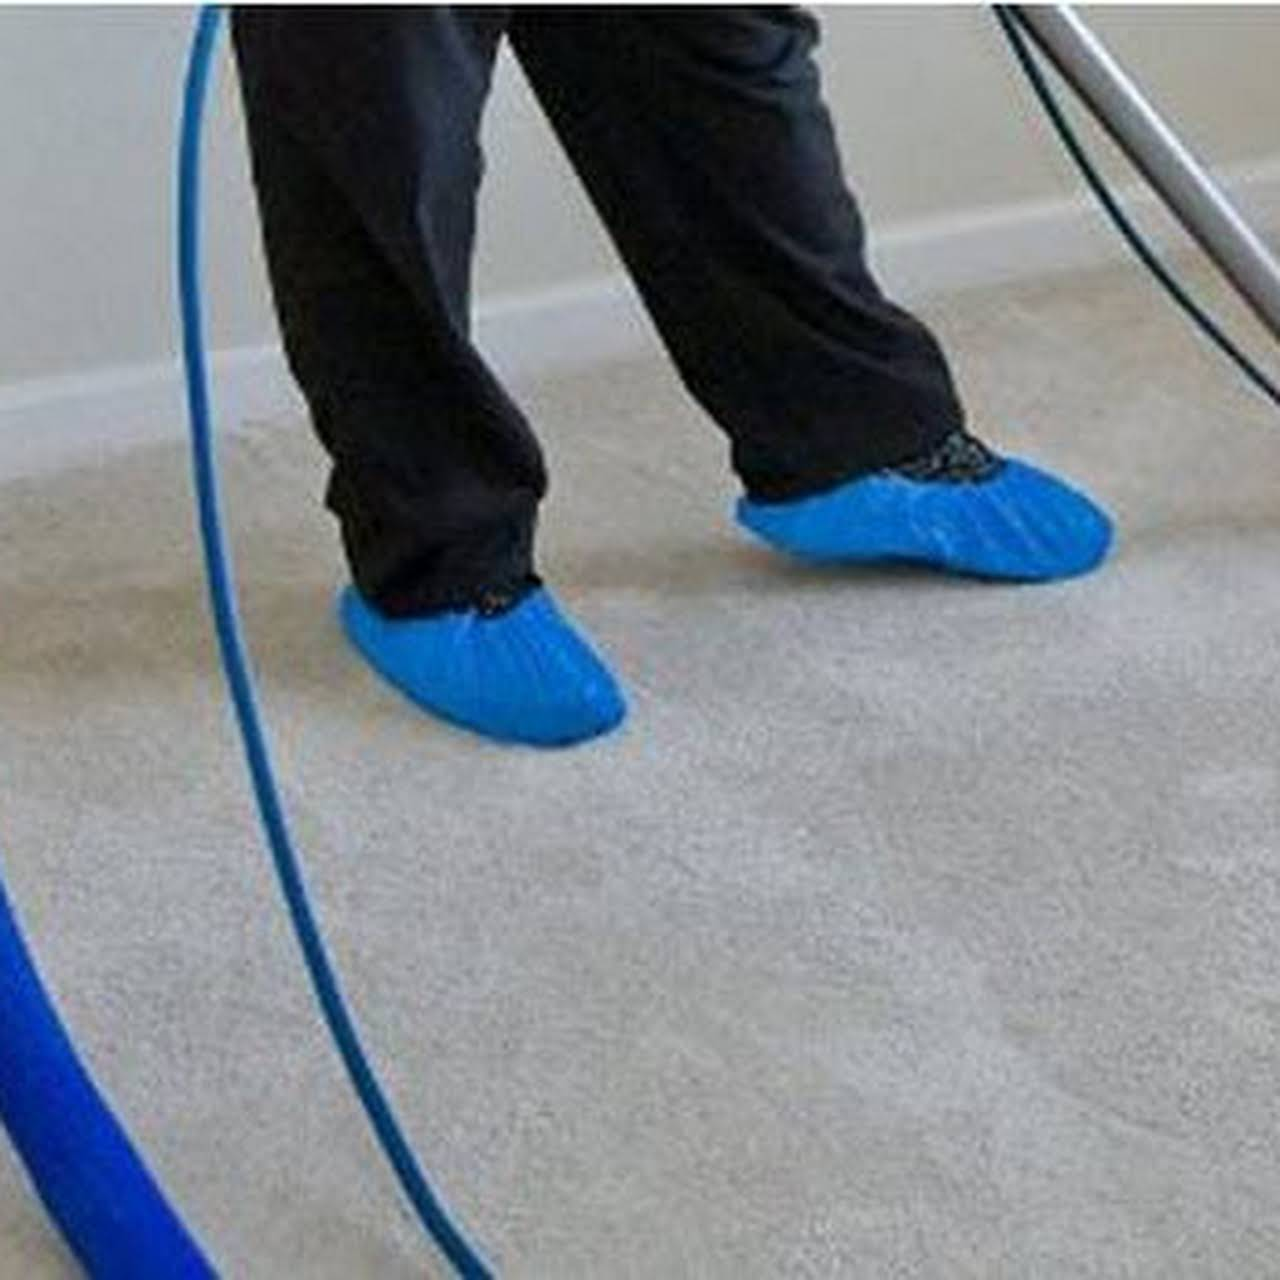 GET $25 CARPET CLEANING PER ROOM MIN 4 ROOMS